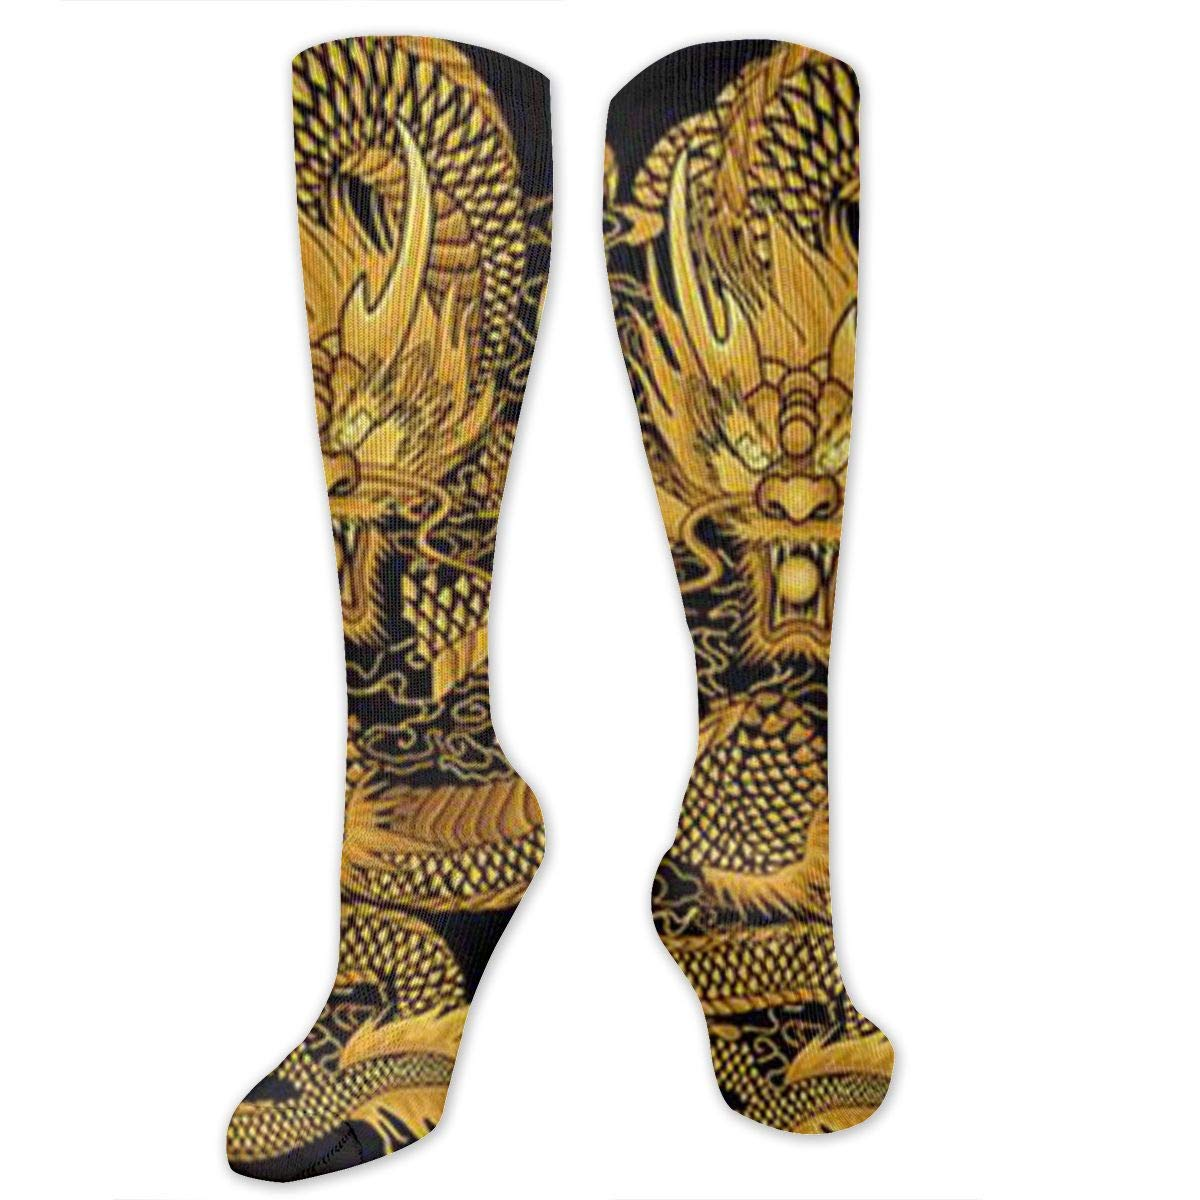 e41d8442bbd DIY Diamond Painting Dancing Chinese Dragon Polyester Cotton Over Knee Leg  High Socks Latest Unisex Thigh Stockings Cosplay Boot Long Tube Socks for  Sports ...